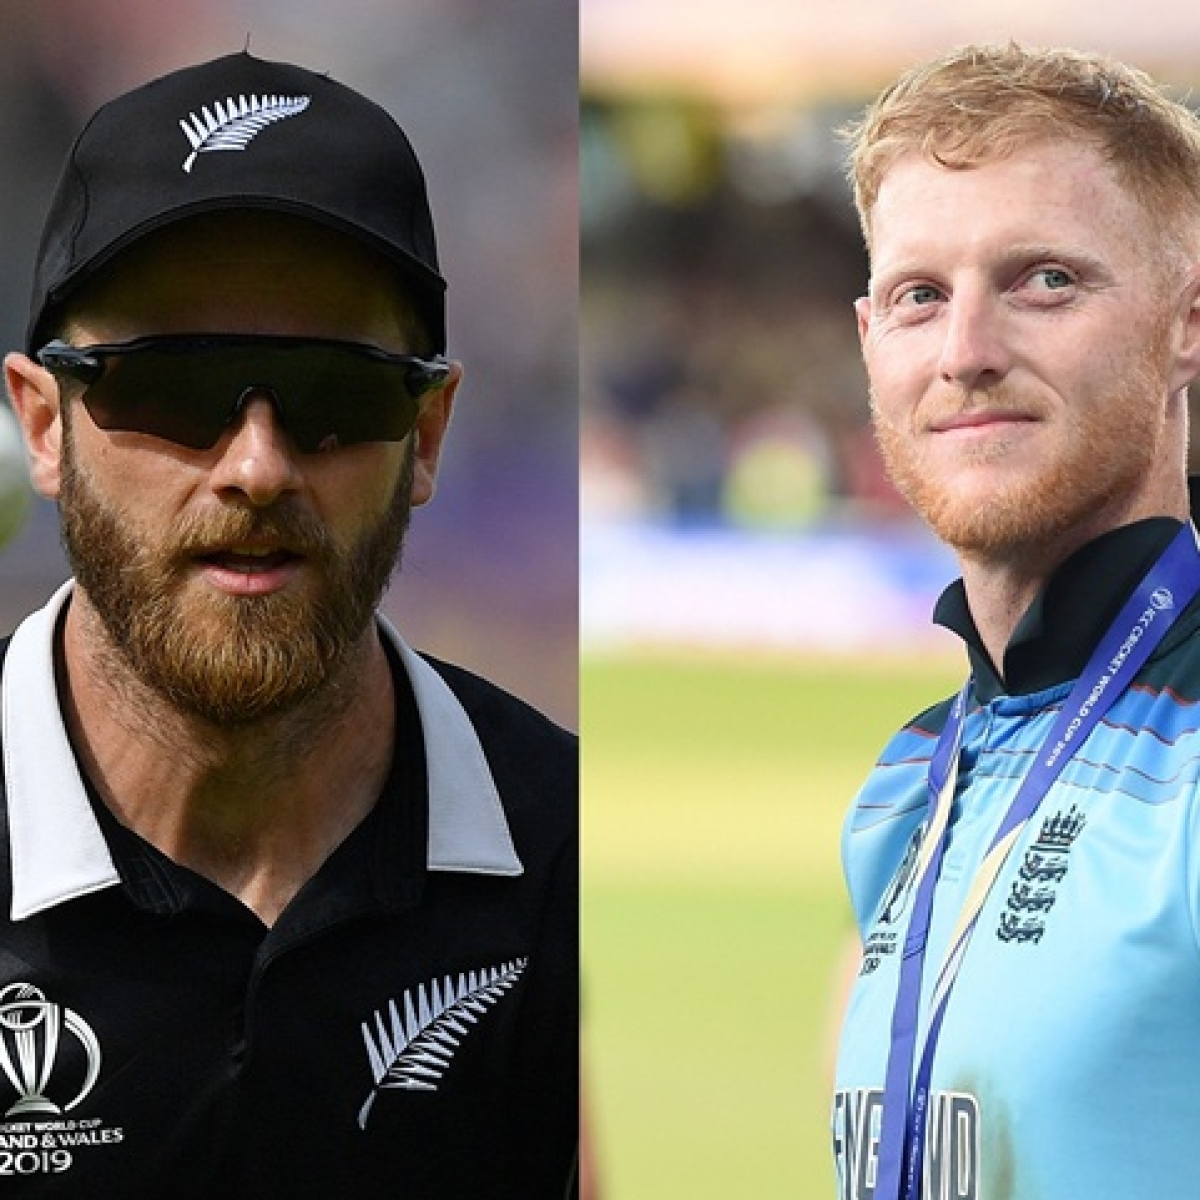 World Cup 2019: Man of the Tournament Kane Williamson, Man of the Match Ben Stokes; here's the full list of awards